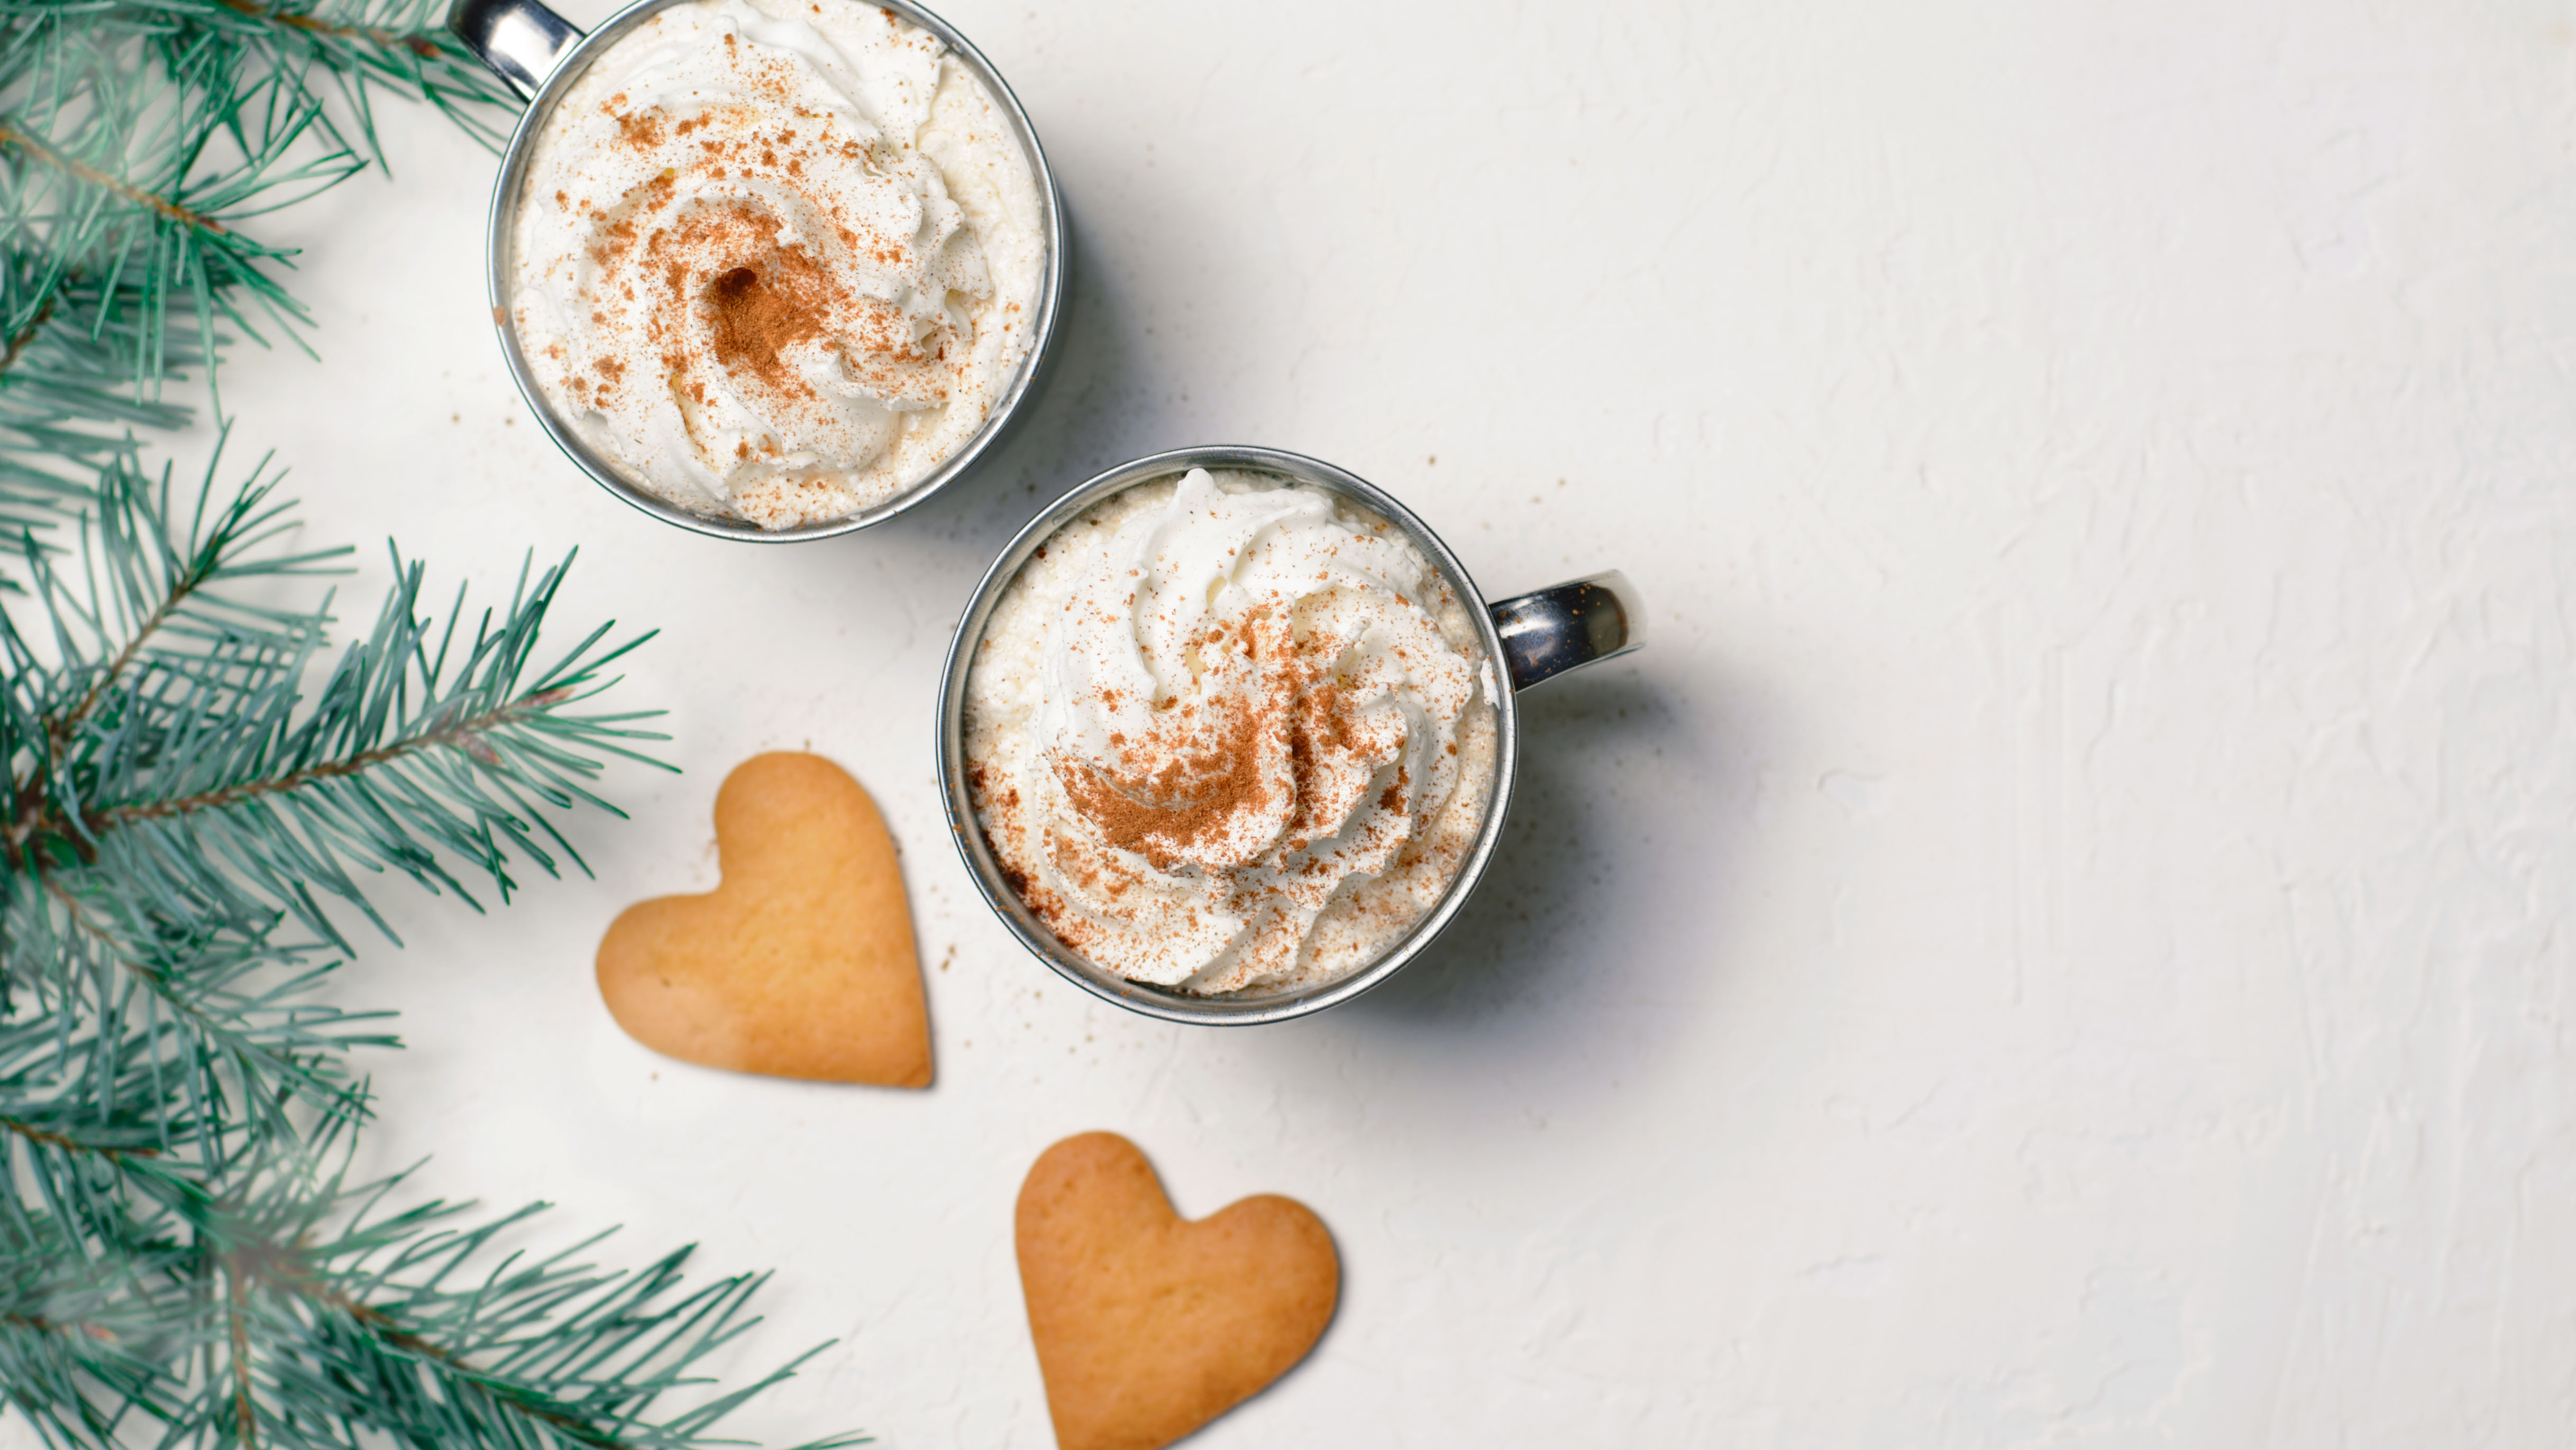 Newsroom Your Favorite Warm Holiday Drinks Without The Guilt